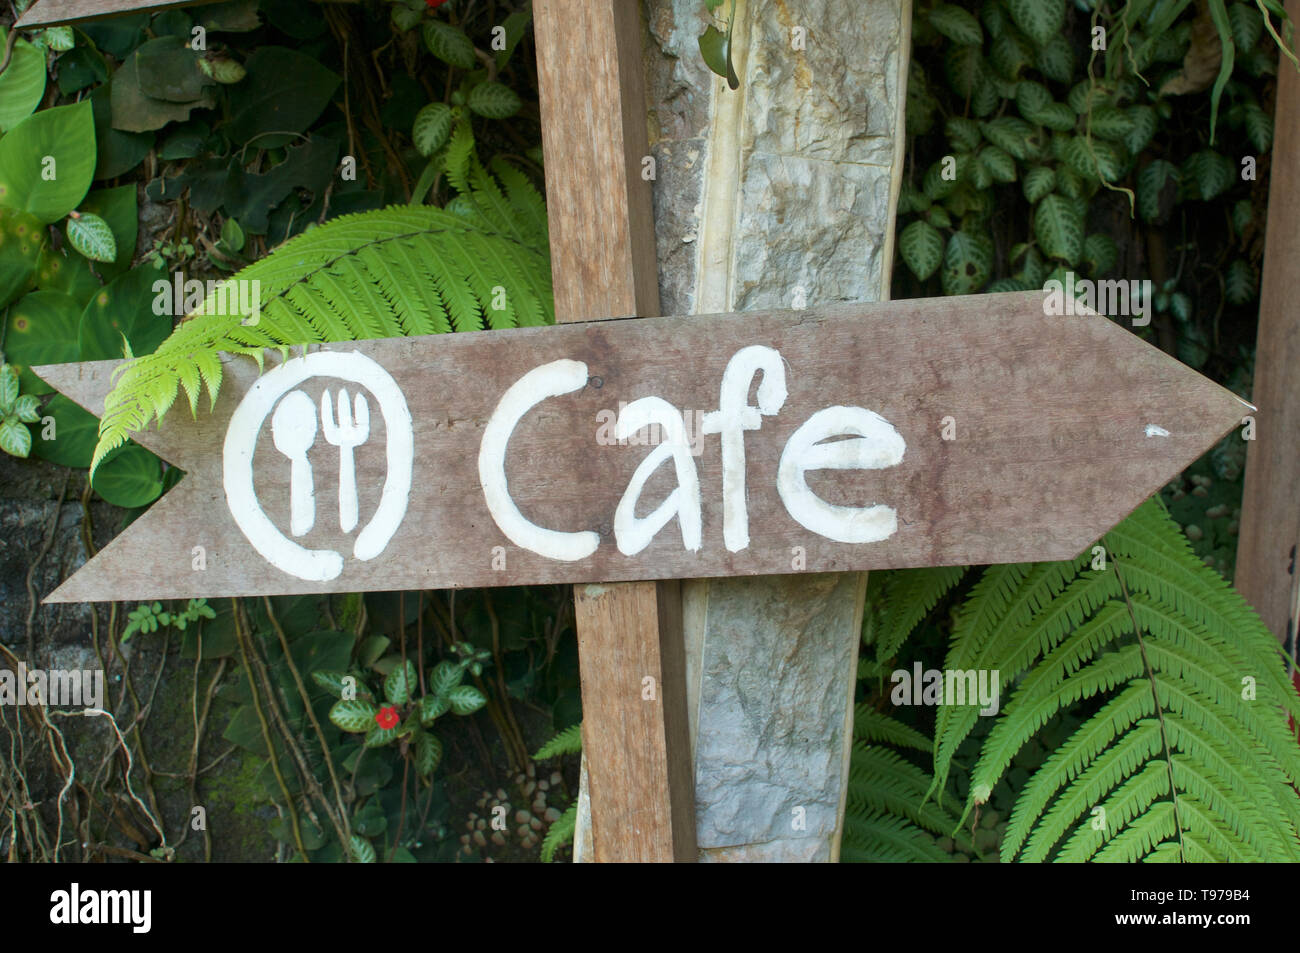 White Cafe writing on a wooden arrow shaped plank, located outside a Cafe in Ubud, Bali - Stock Image